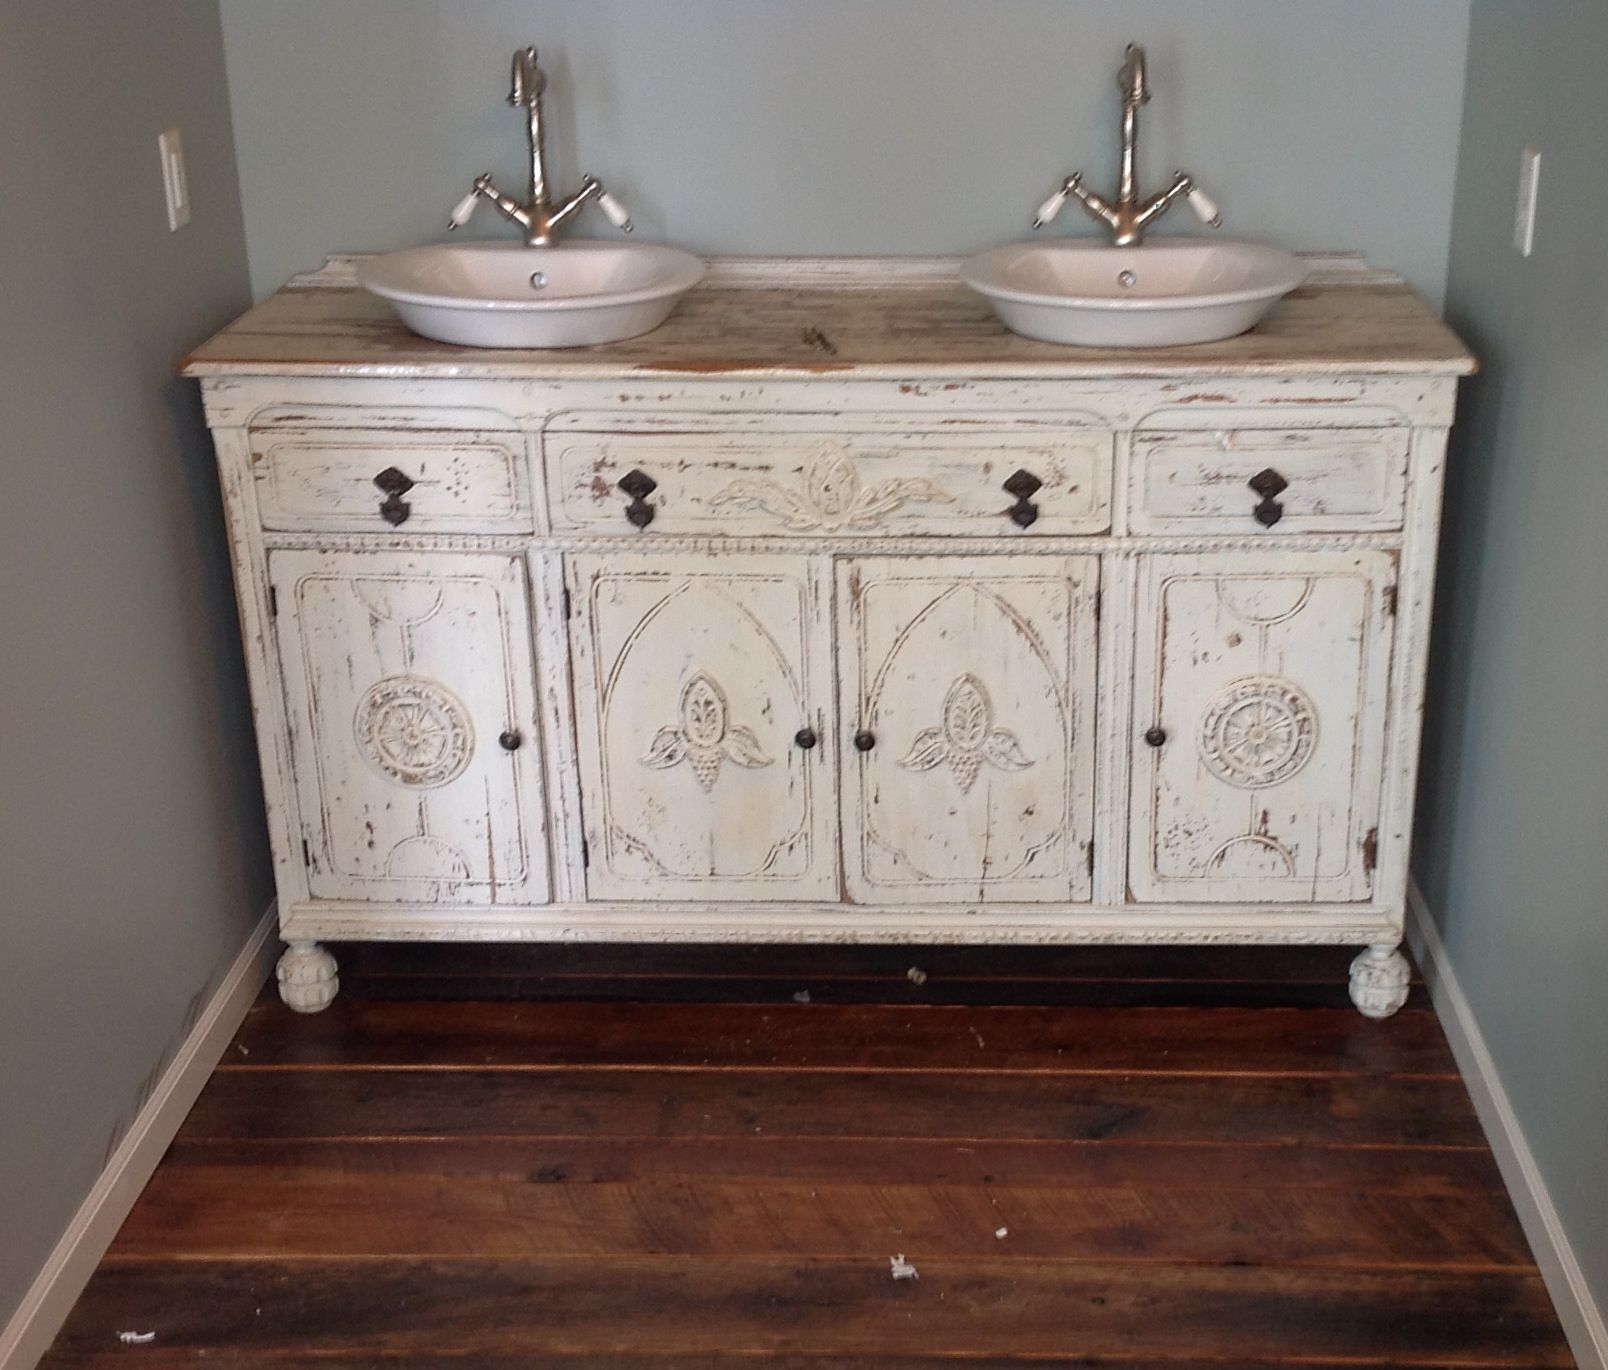 Custom Bathroom Vanities Uk painted shabby chic repurposed bathroom sink vanity. repurposed